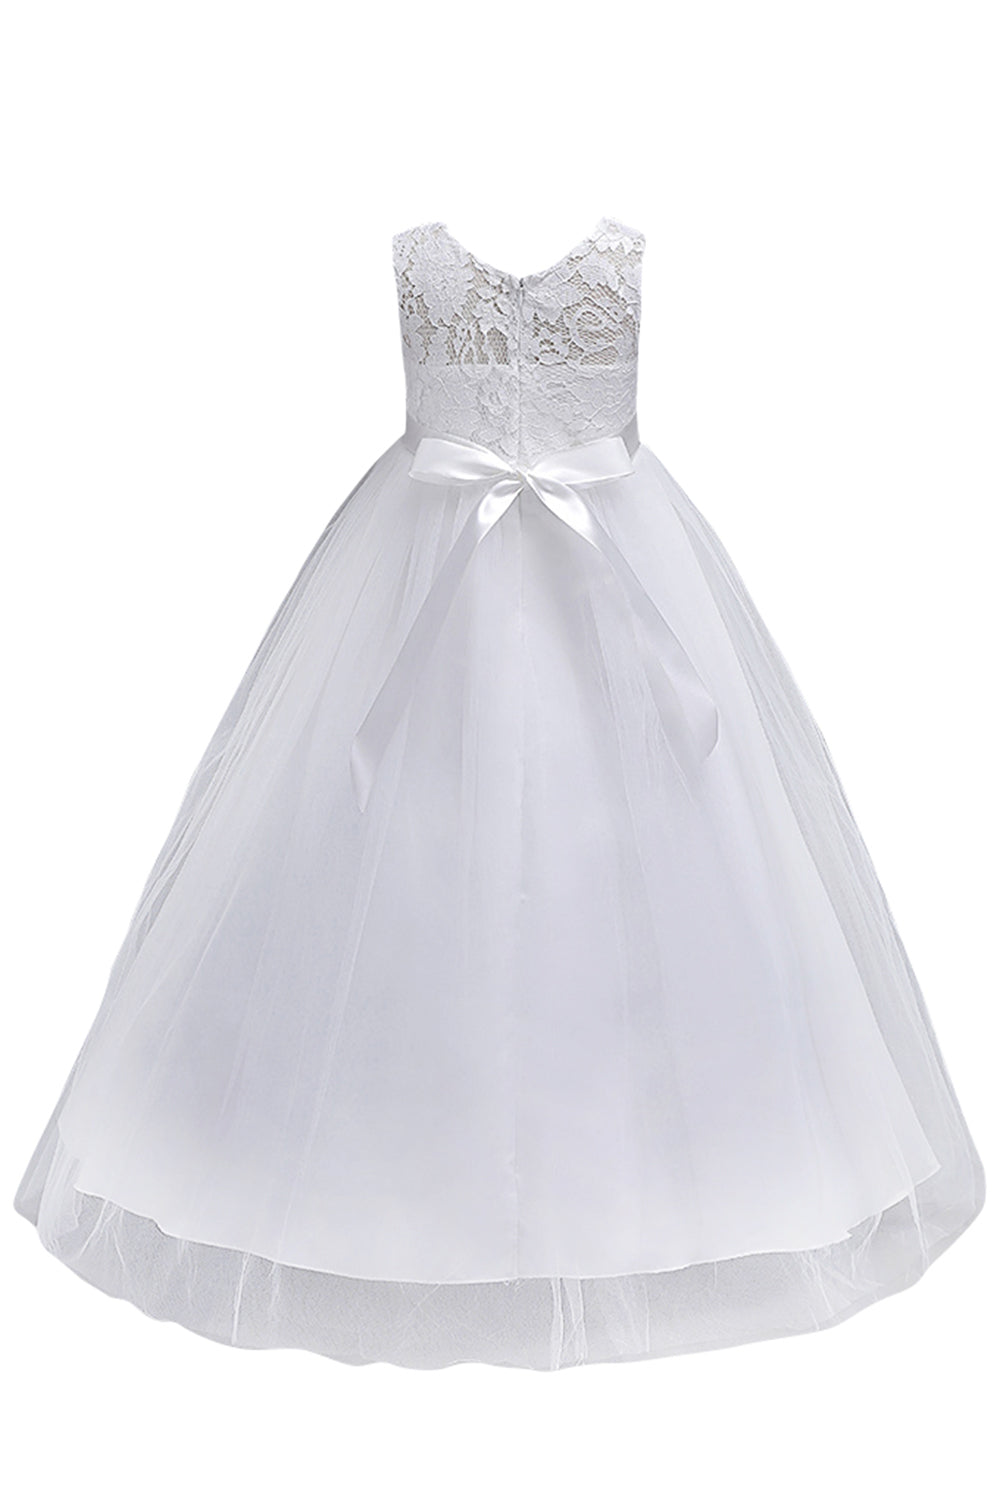 Blue lace flower girl dresses tulle 3 colours navy blue lace flower girl dresses tulle 3 colours izmirmasajfo Gallery